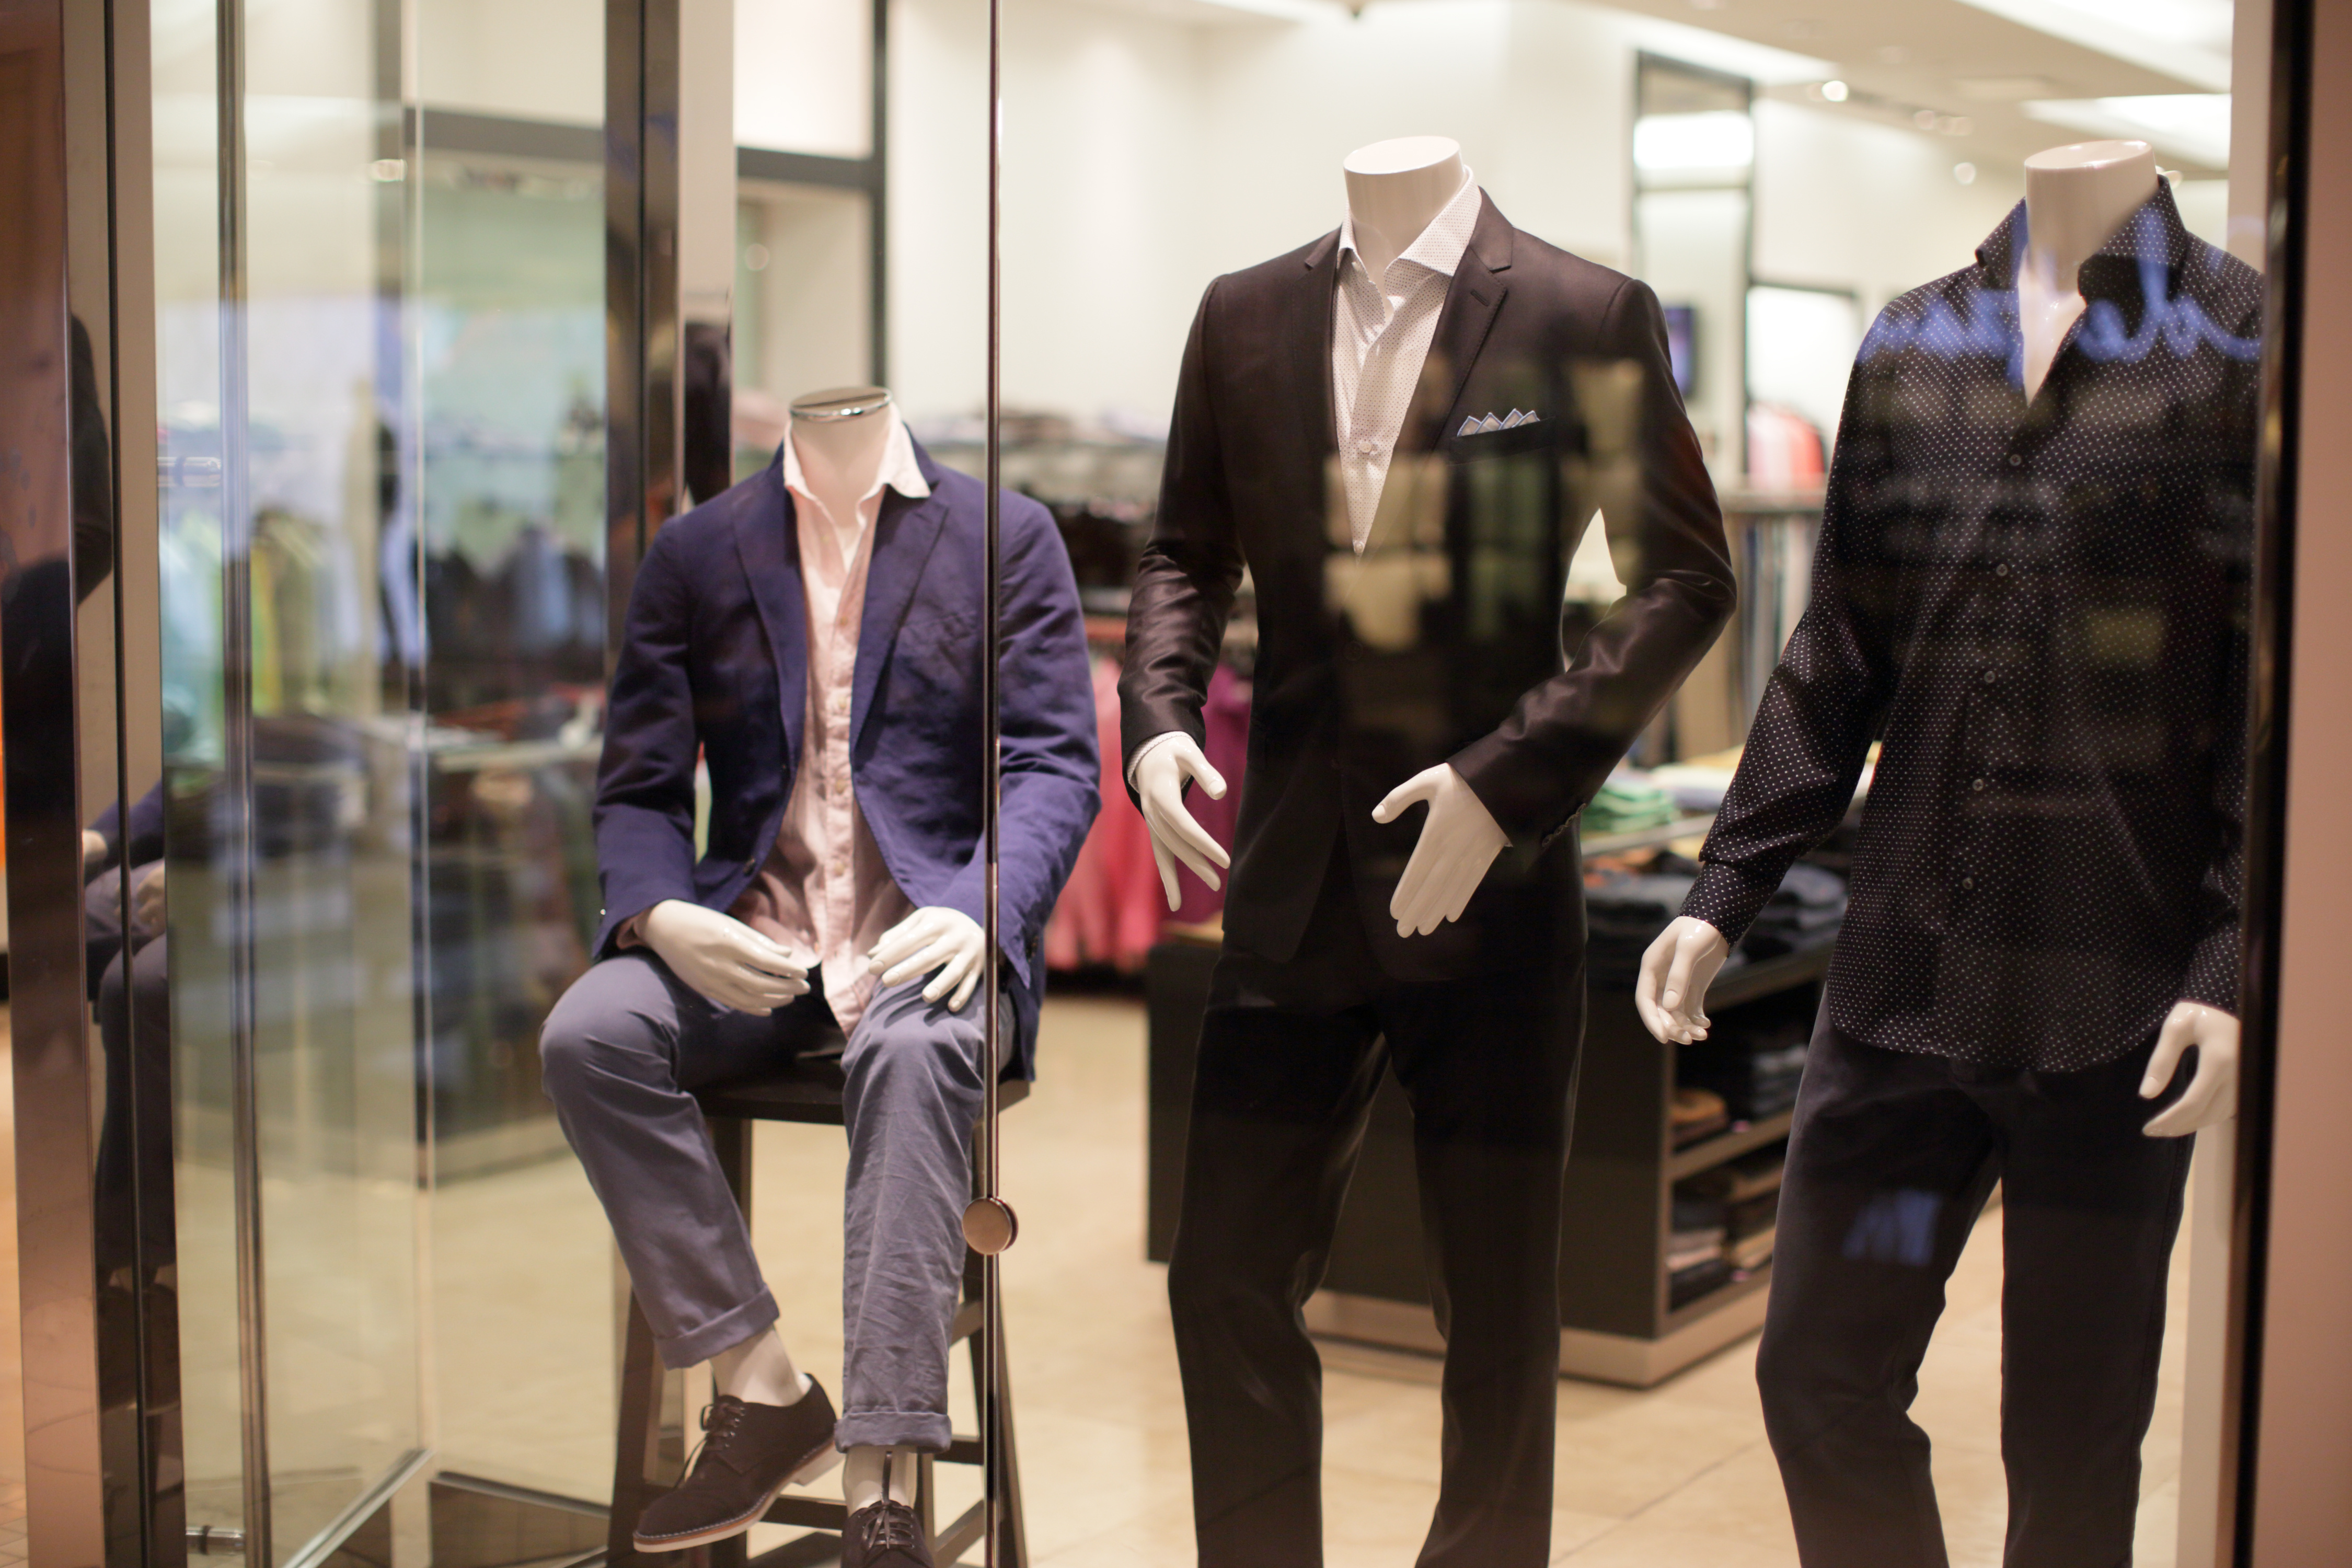 Male Mannequins Are Setting The Fashion Scene